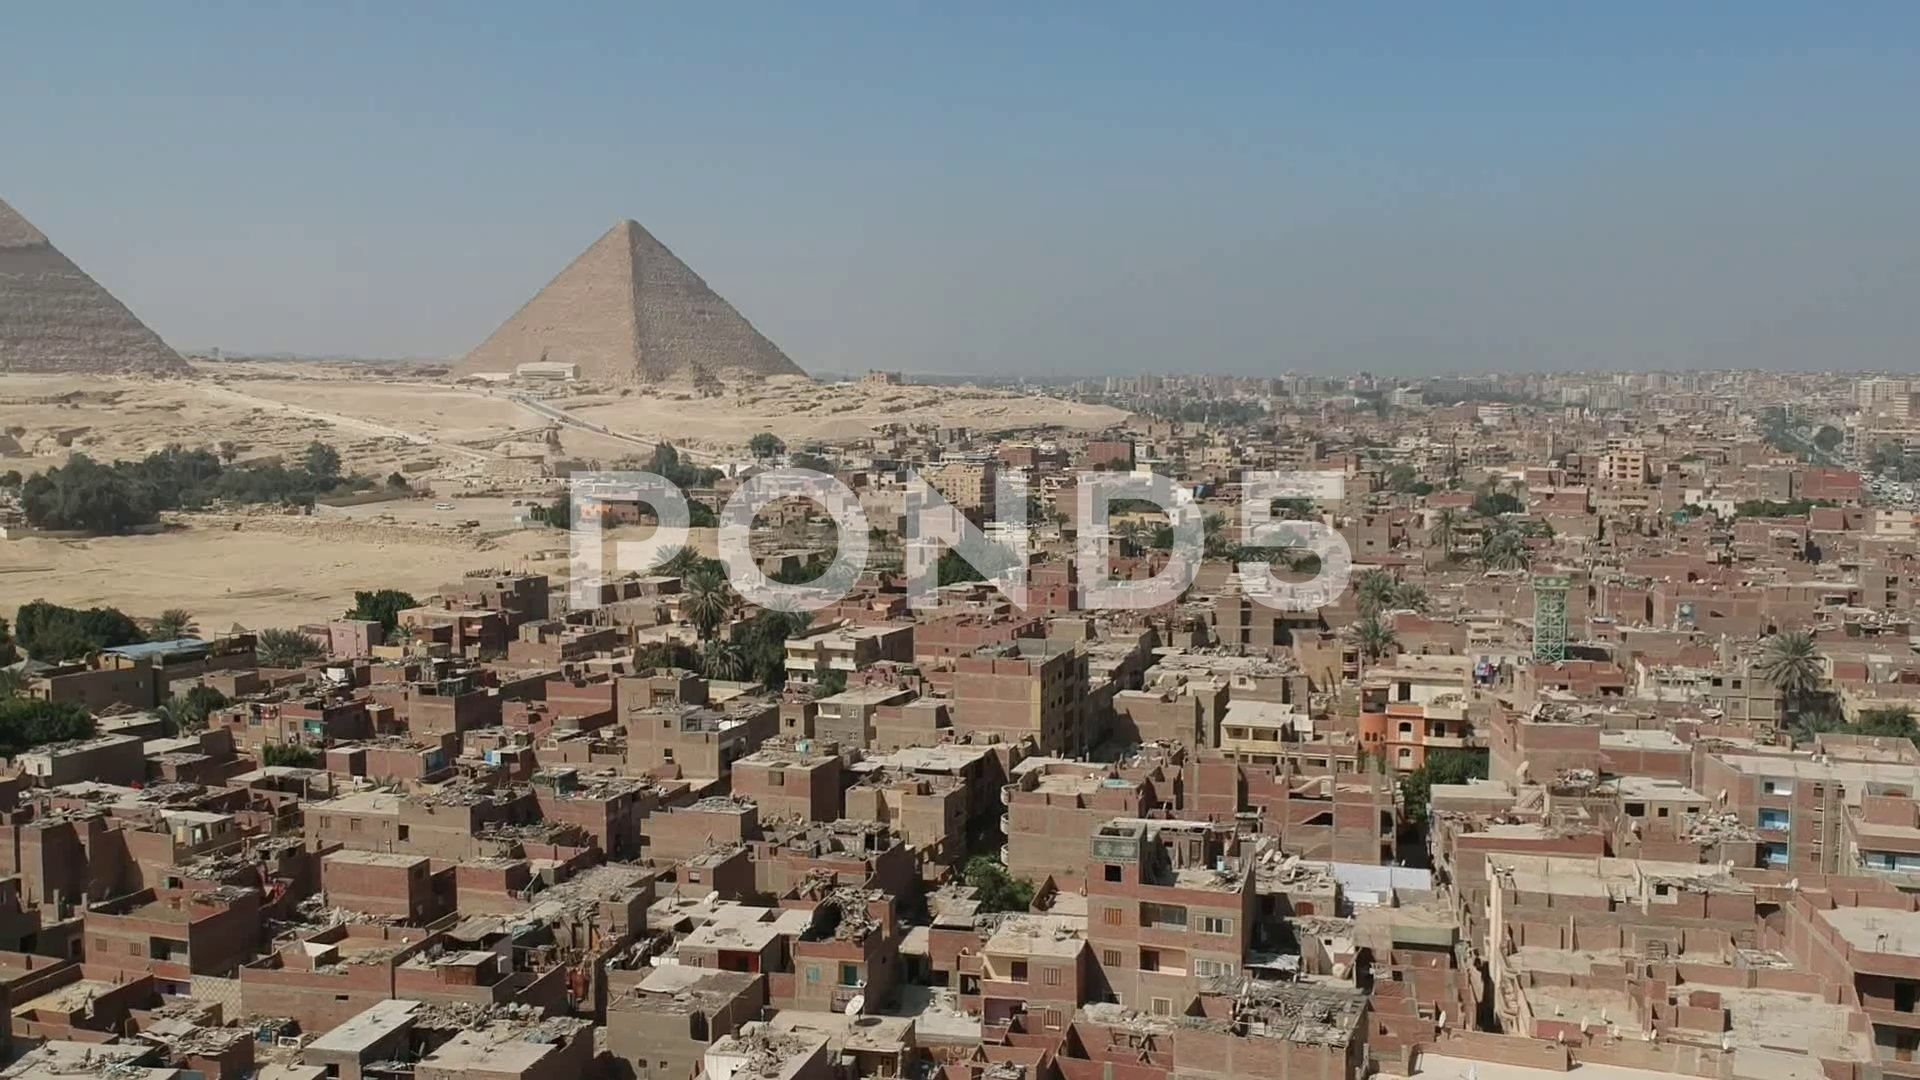 Drone Footage Pyramids Of Giza Egypt Near Cairo Stock Footage